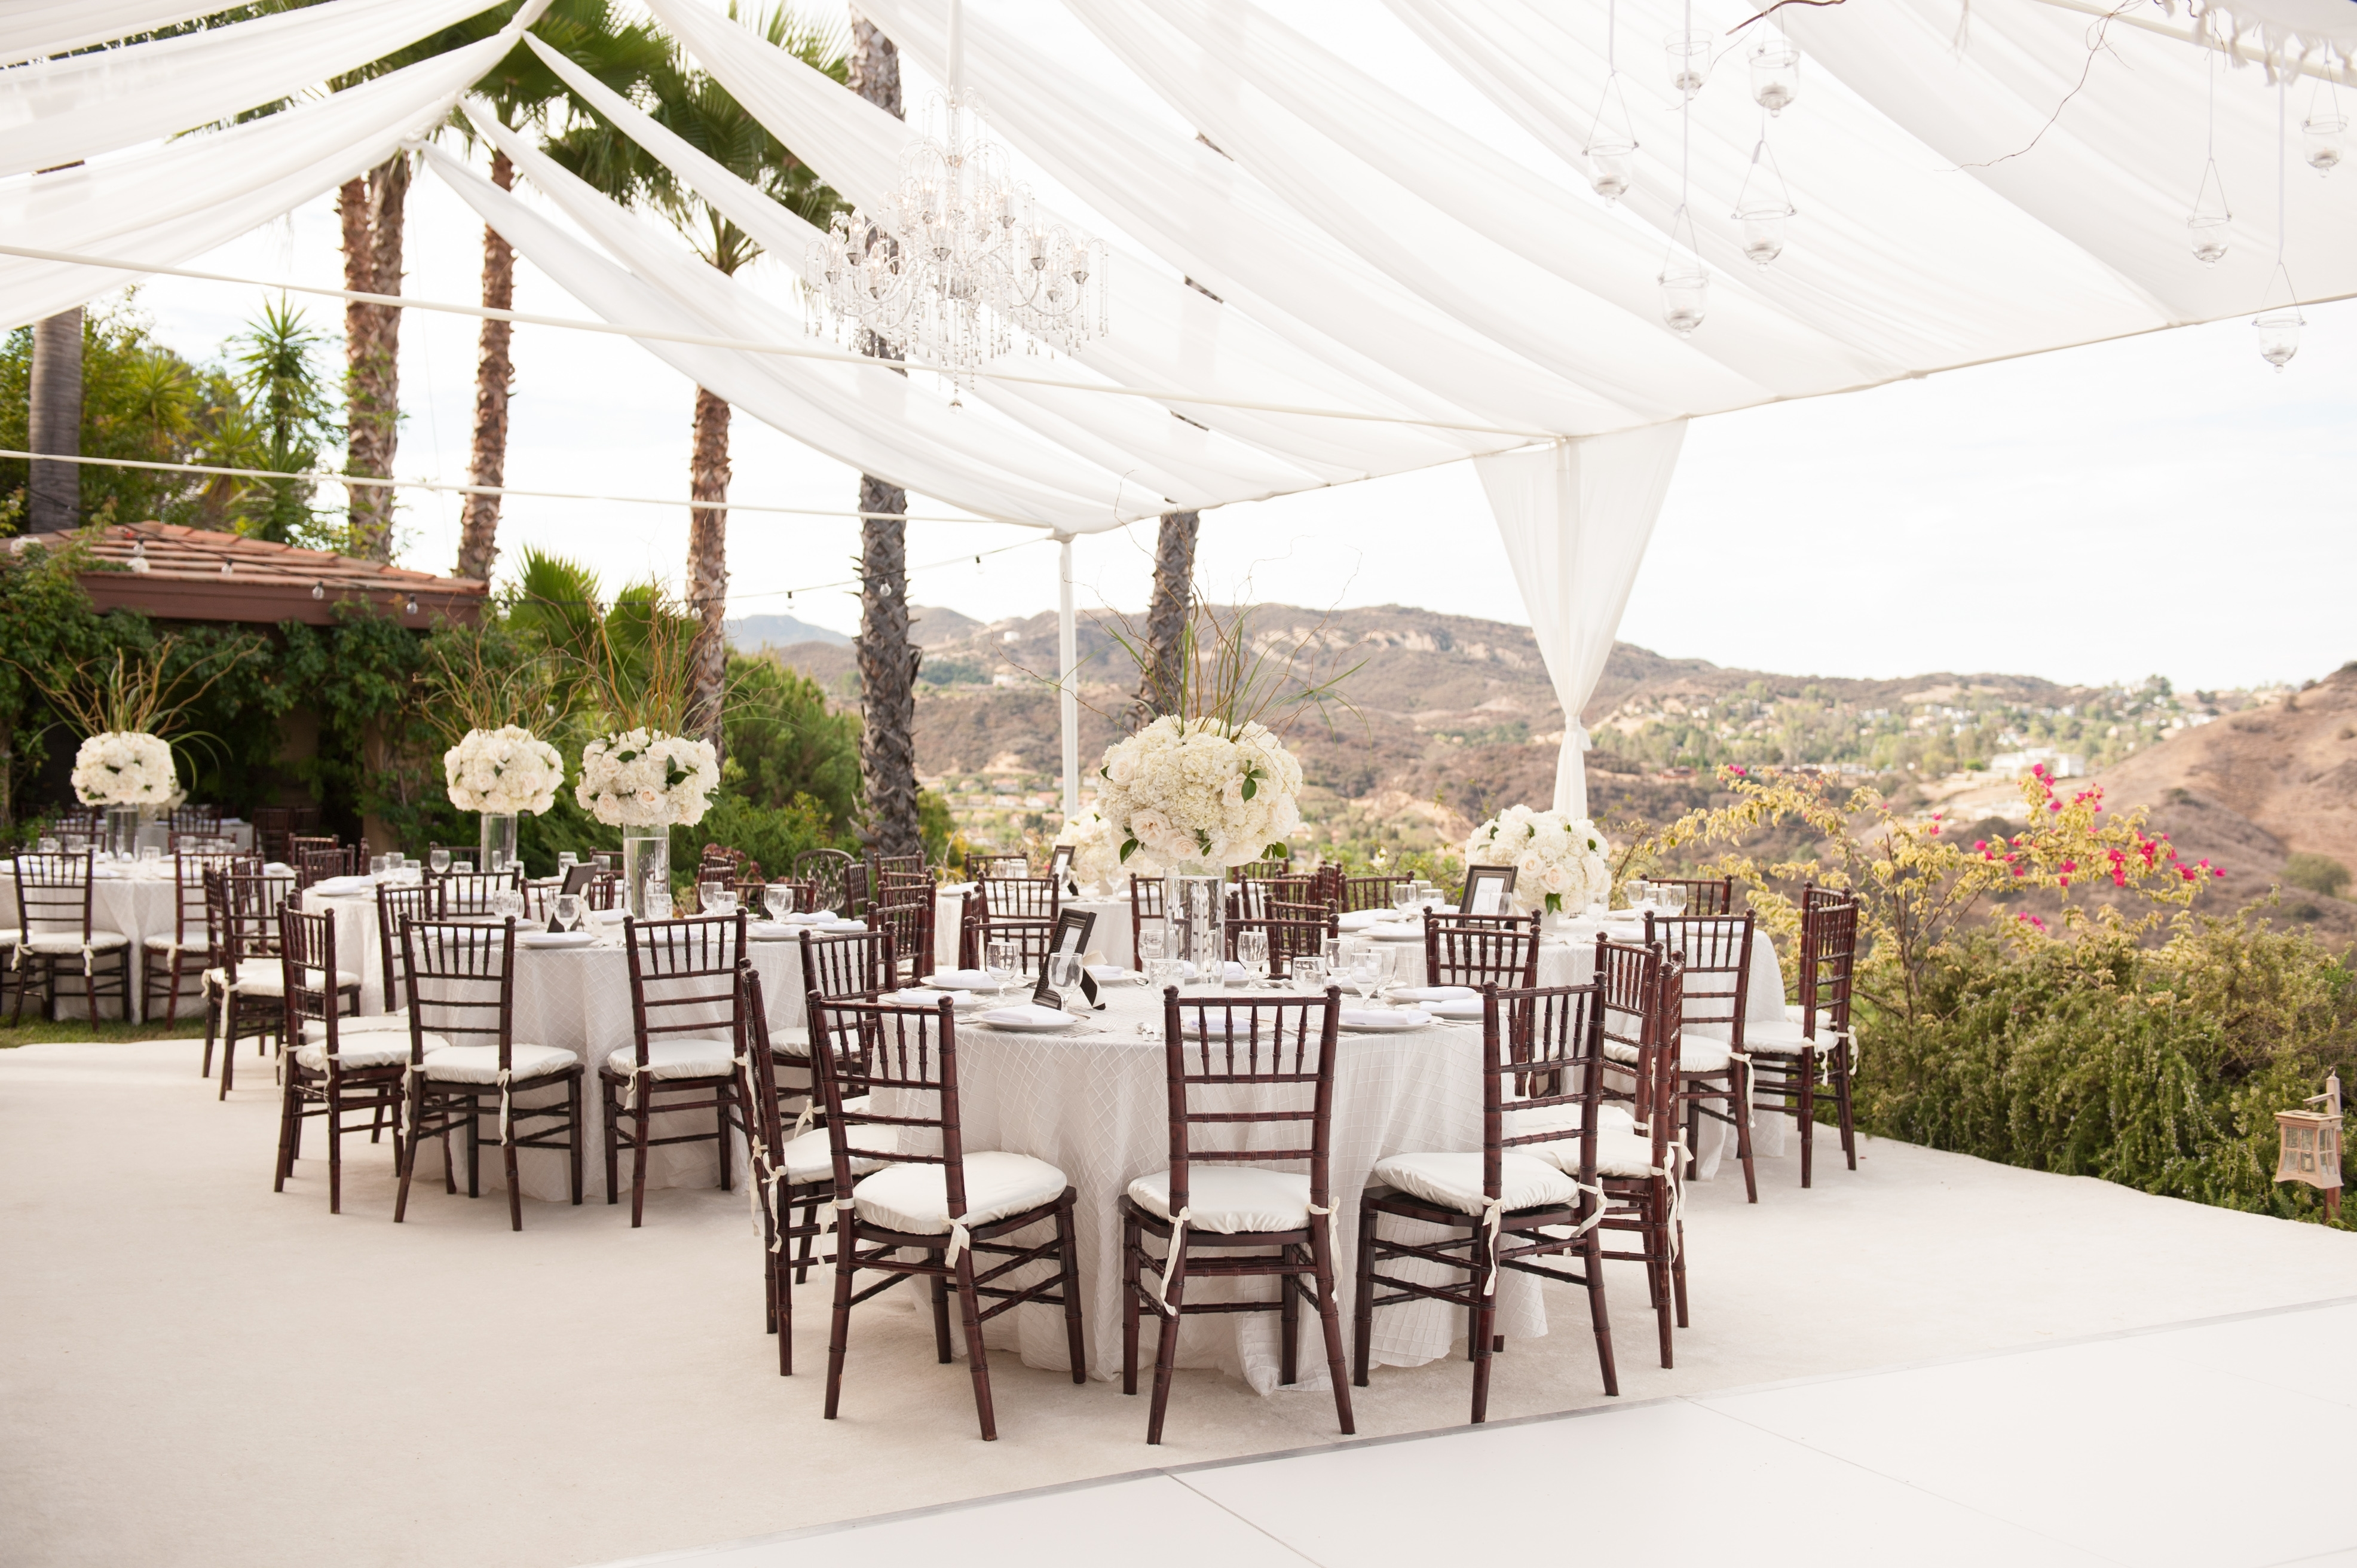 Party Rentals Los Angeles Intended For Patio Umbrellas For Rent (View 11 of 20)